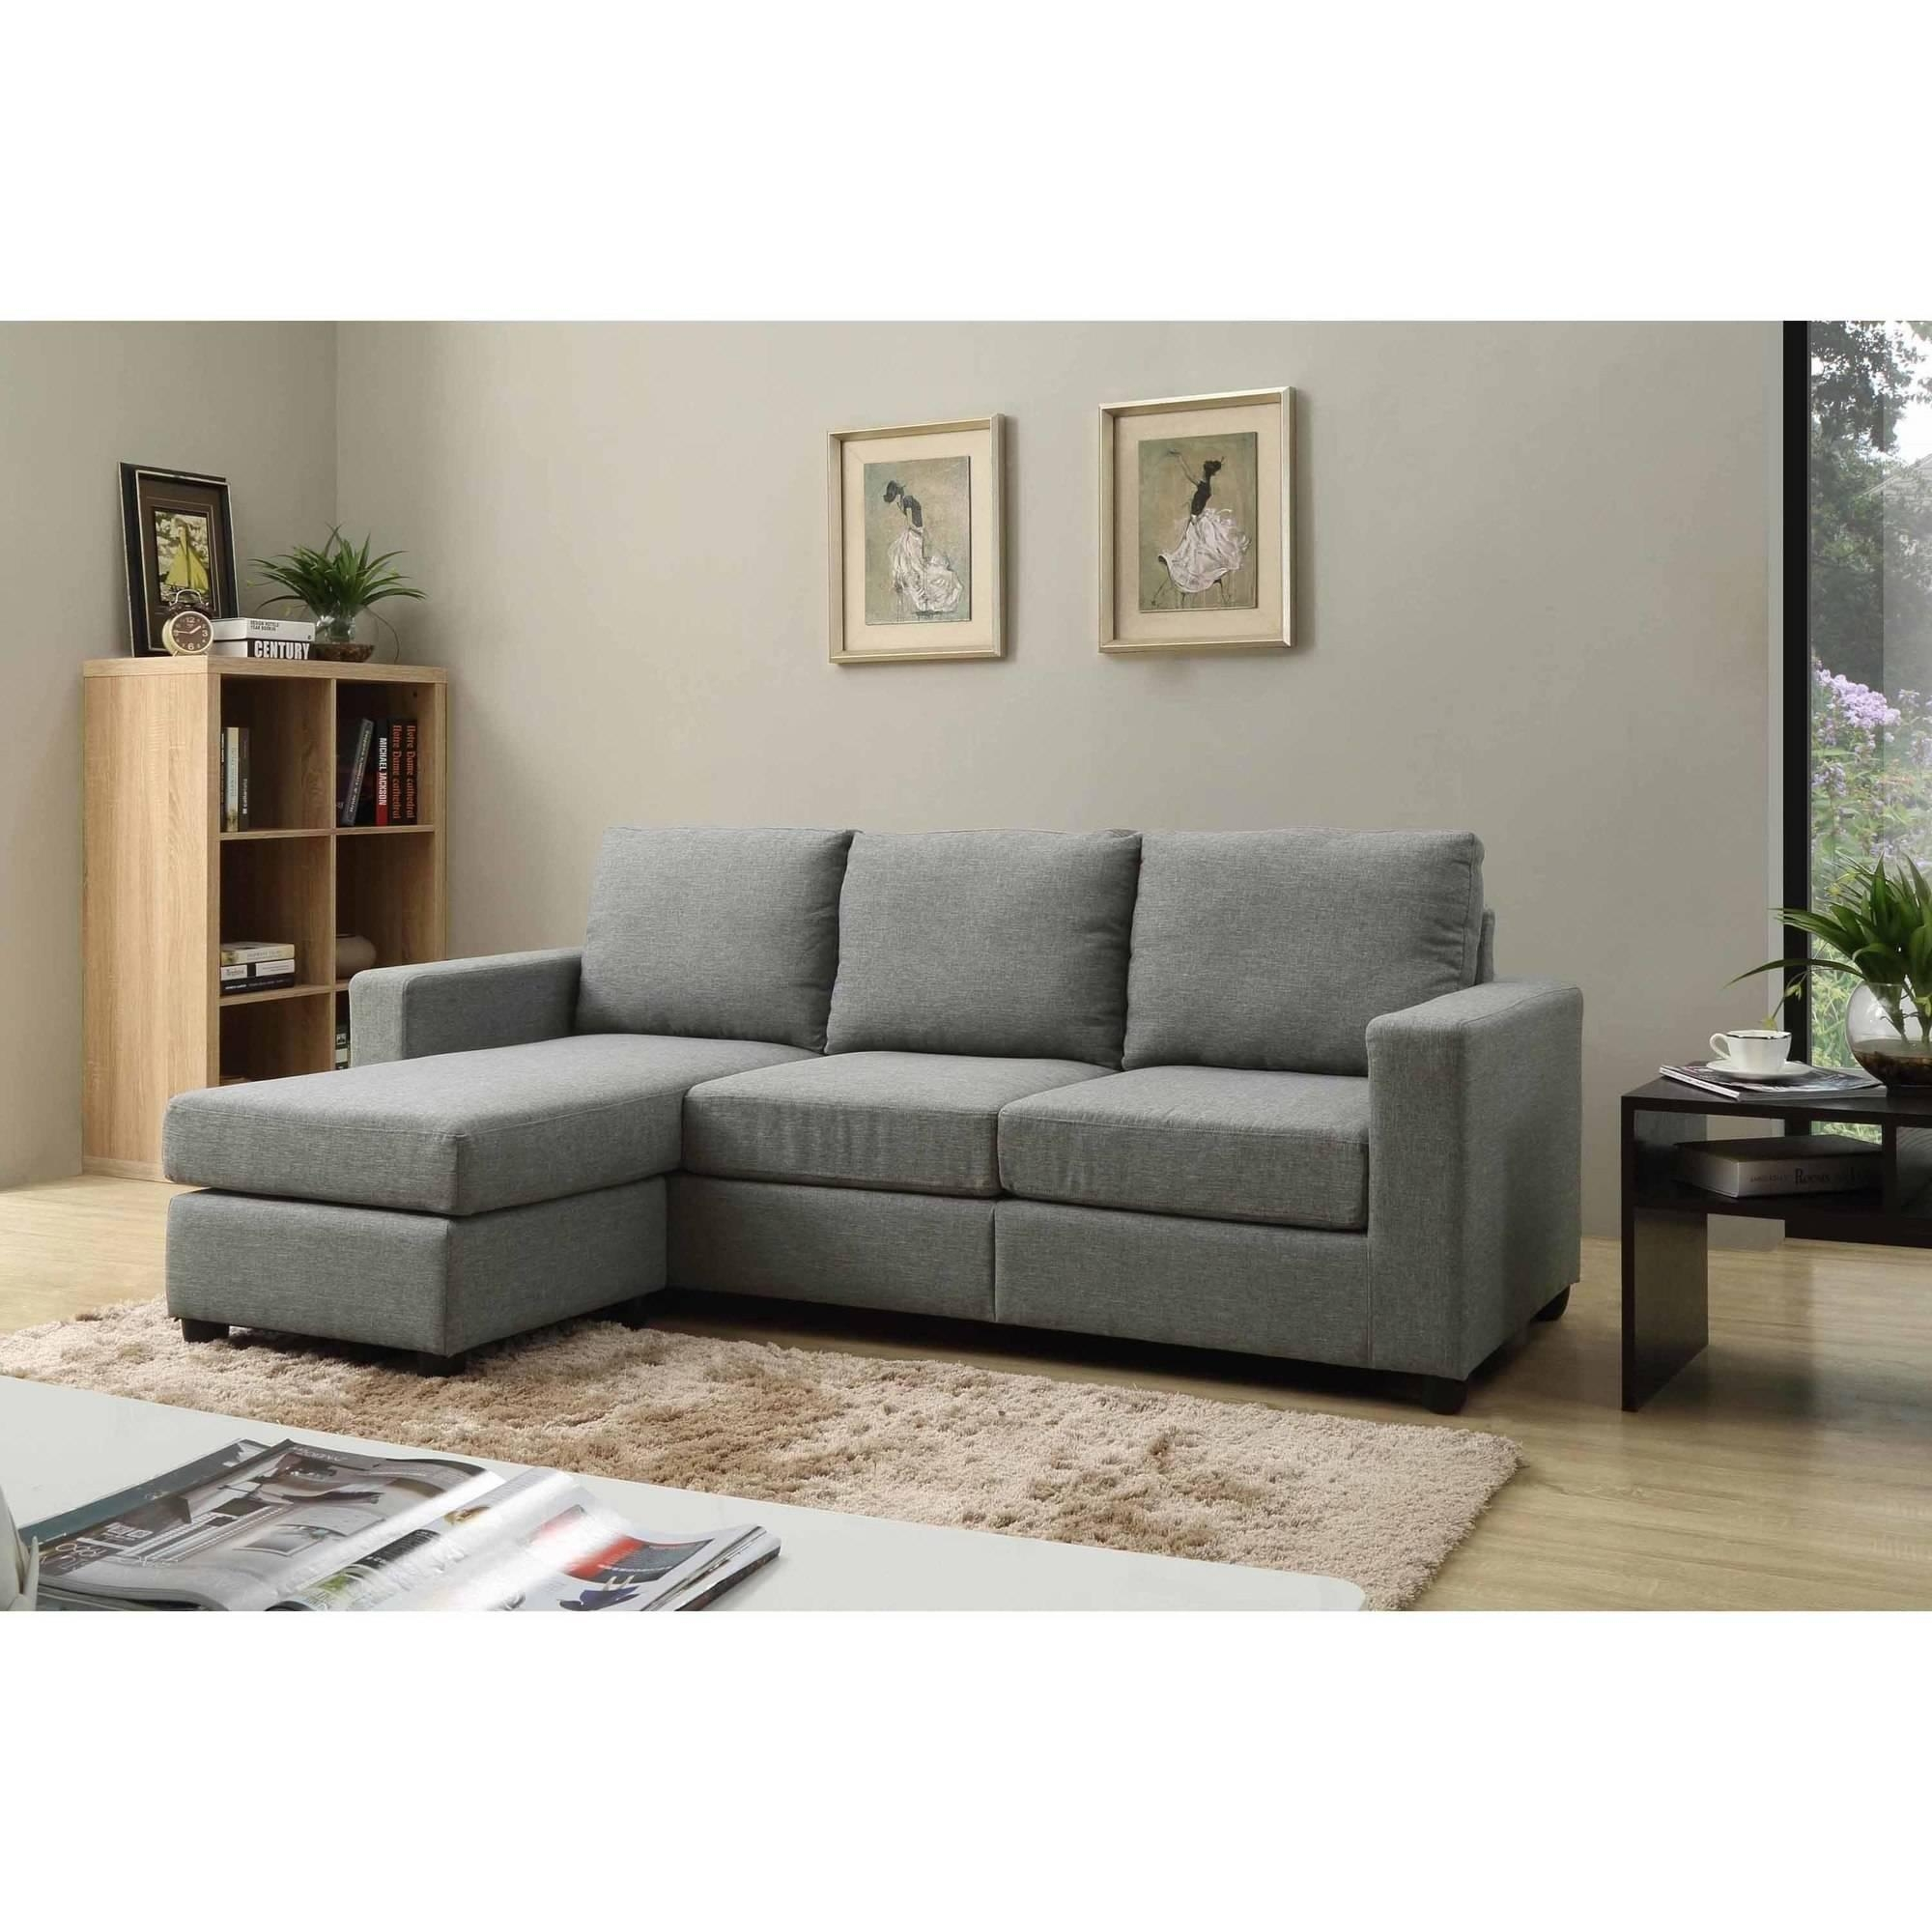 Nathaniel Home Alexandra Small Space Convertible Sectional regarding Convertible Sectional Sofas